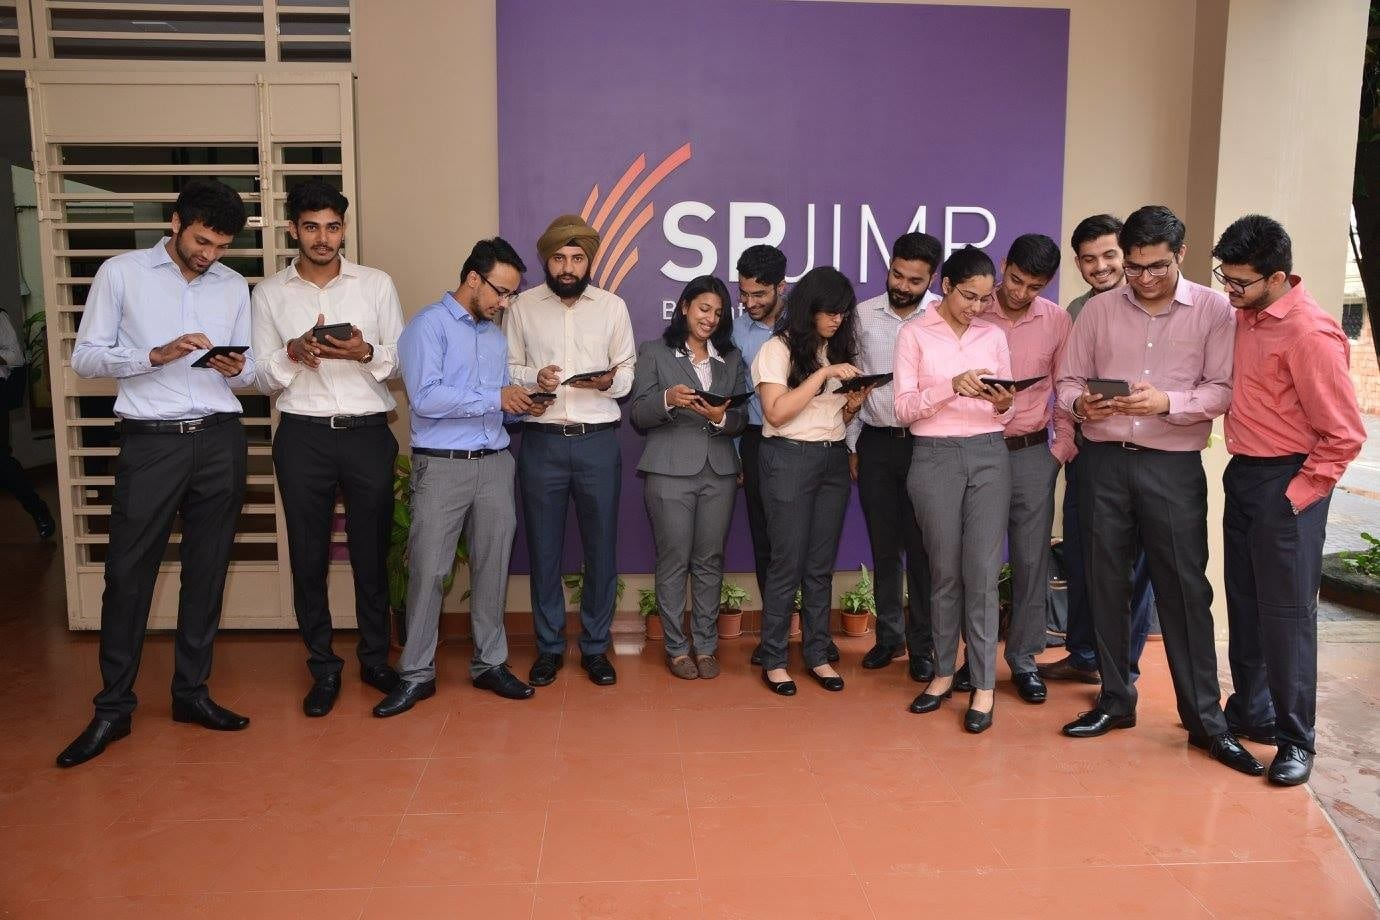 In a New Digital Initiative, SPJIMR partners with Amazon to move MBA Textbooks to Kindle e-readers